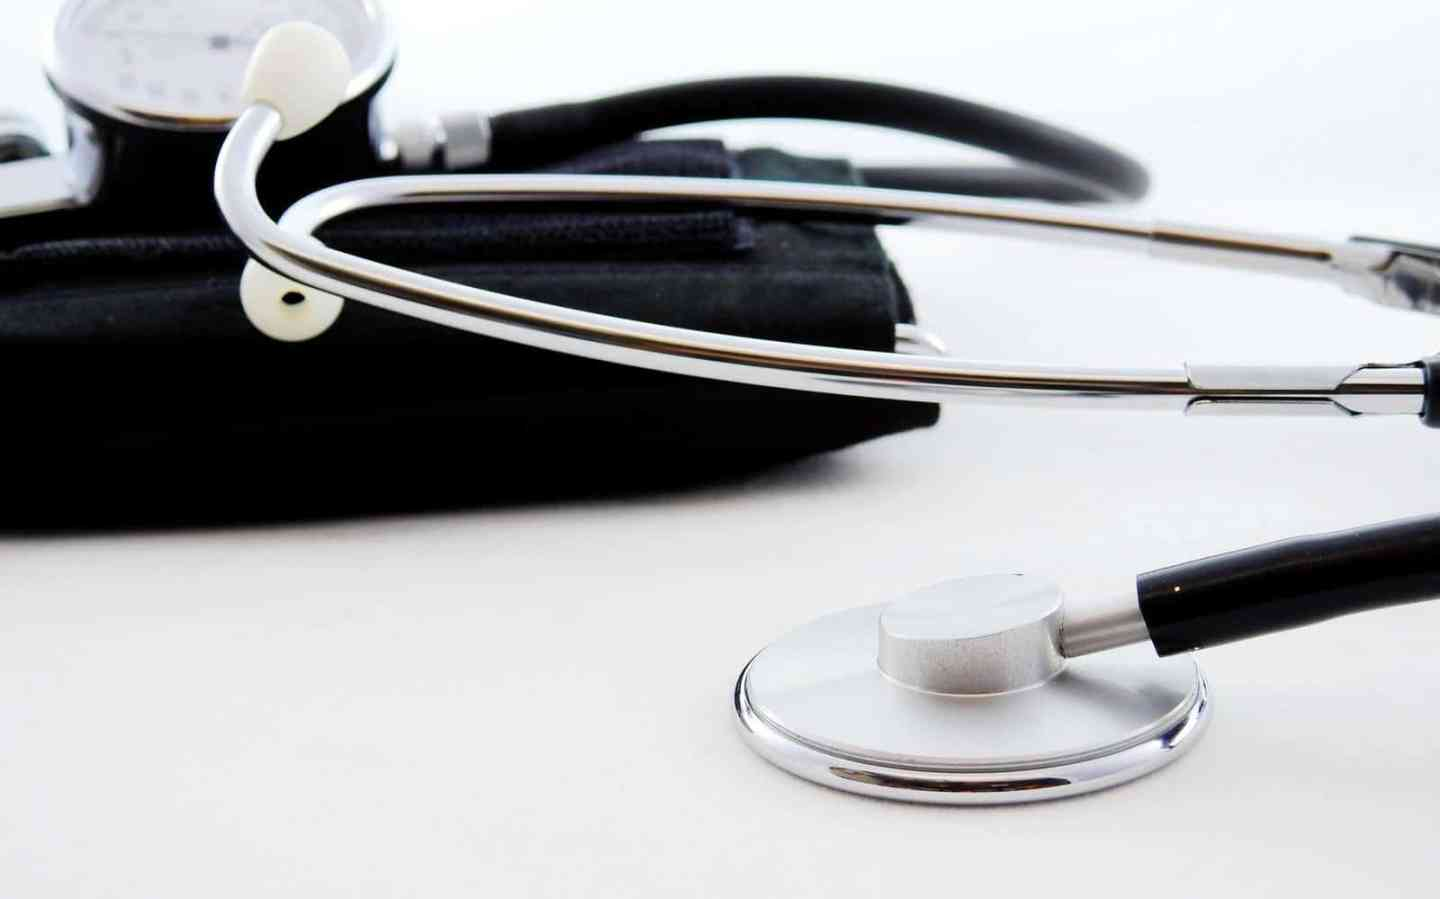 Protecting Your Family: Do You Know Your Rights When Dealing with Doctors?